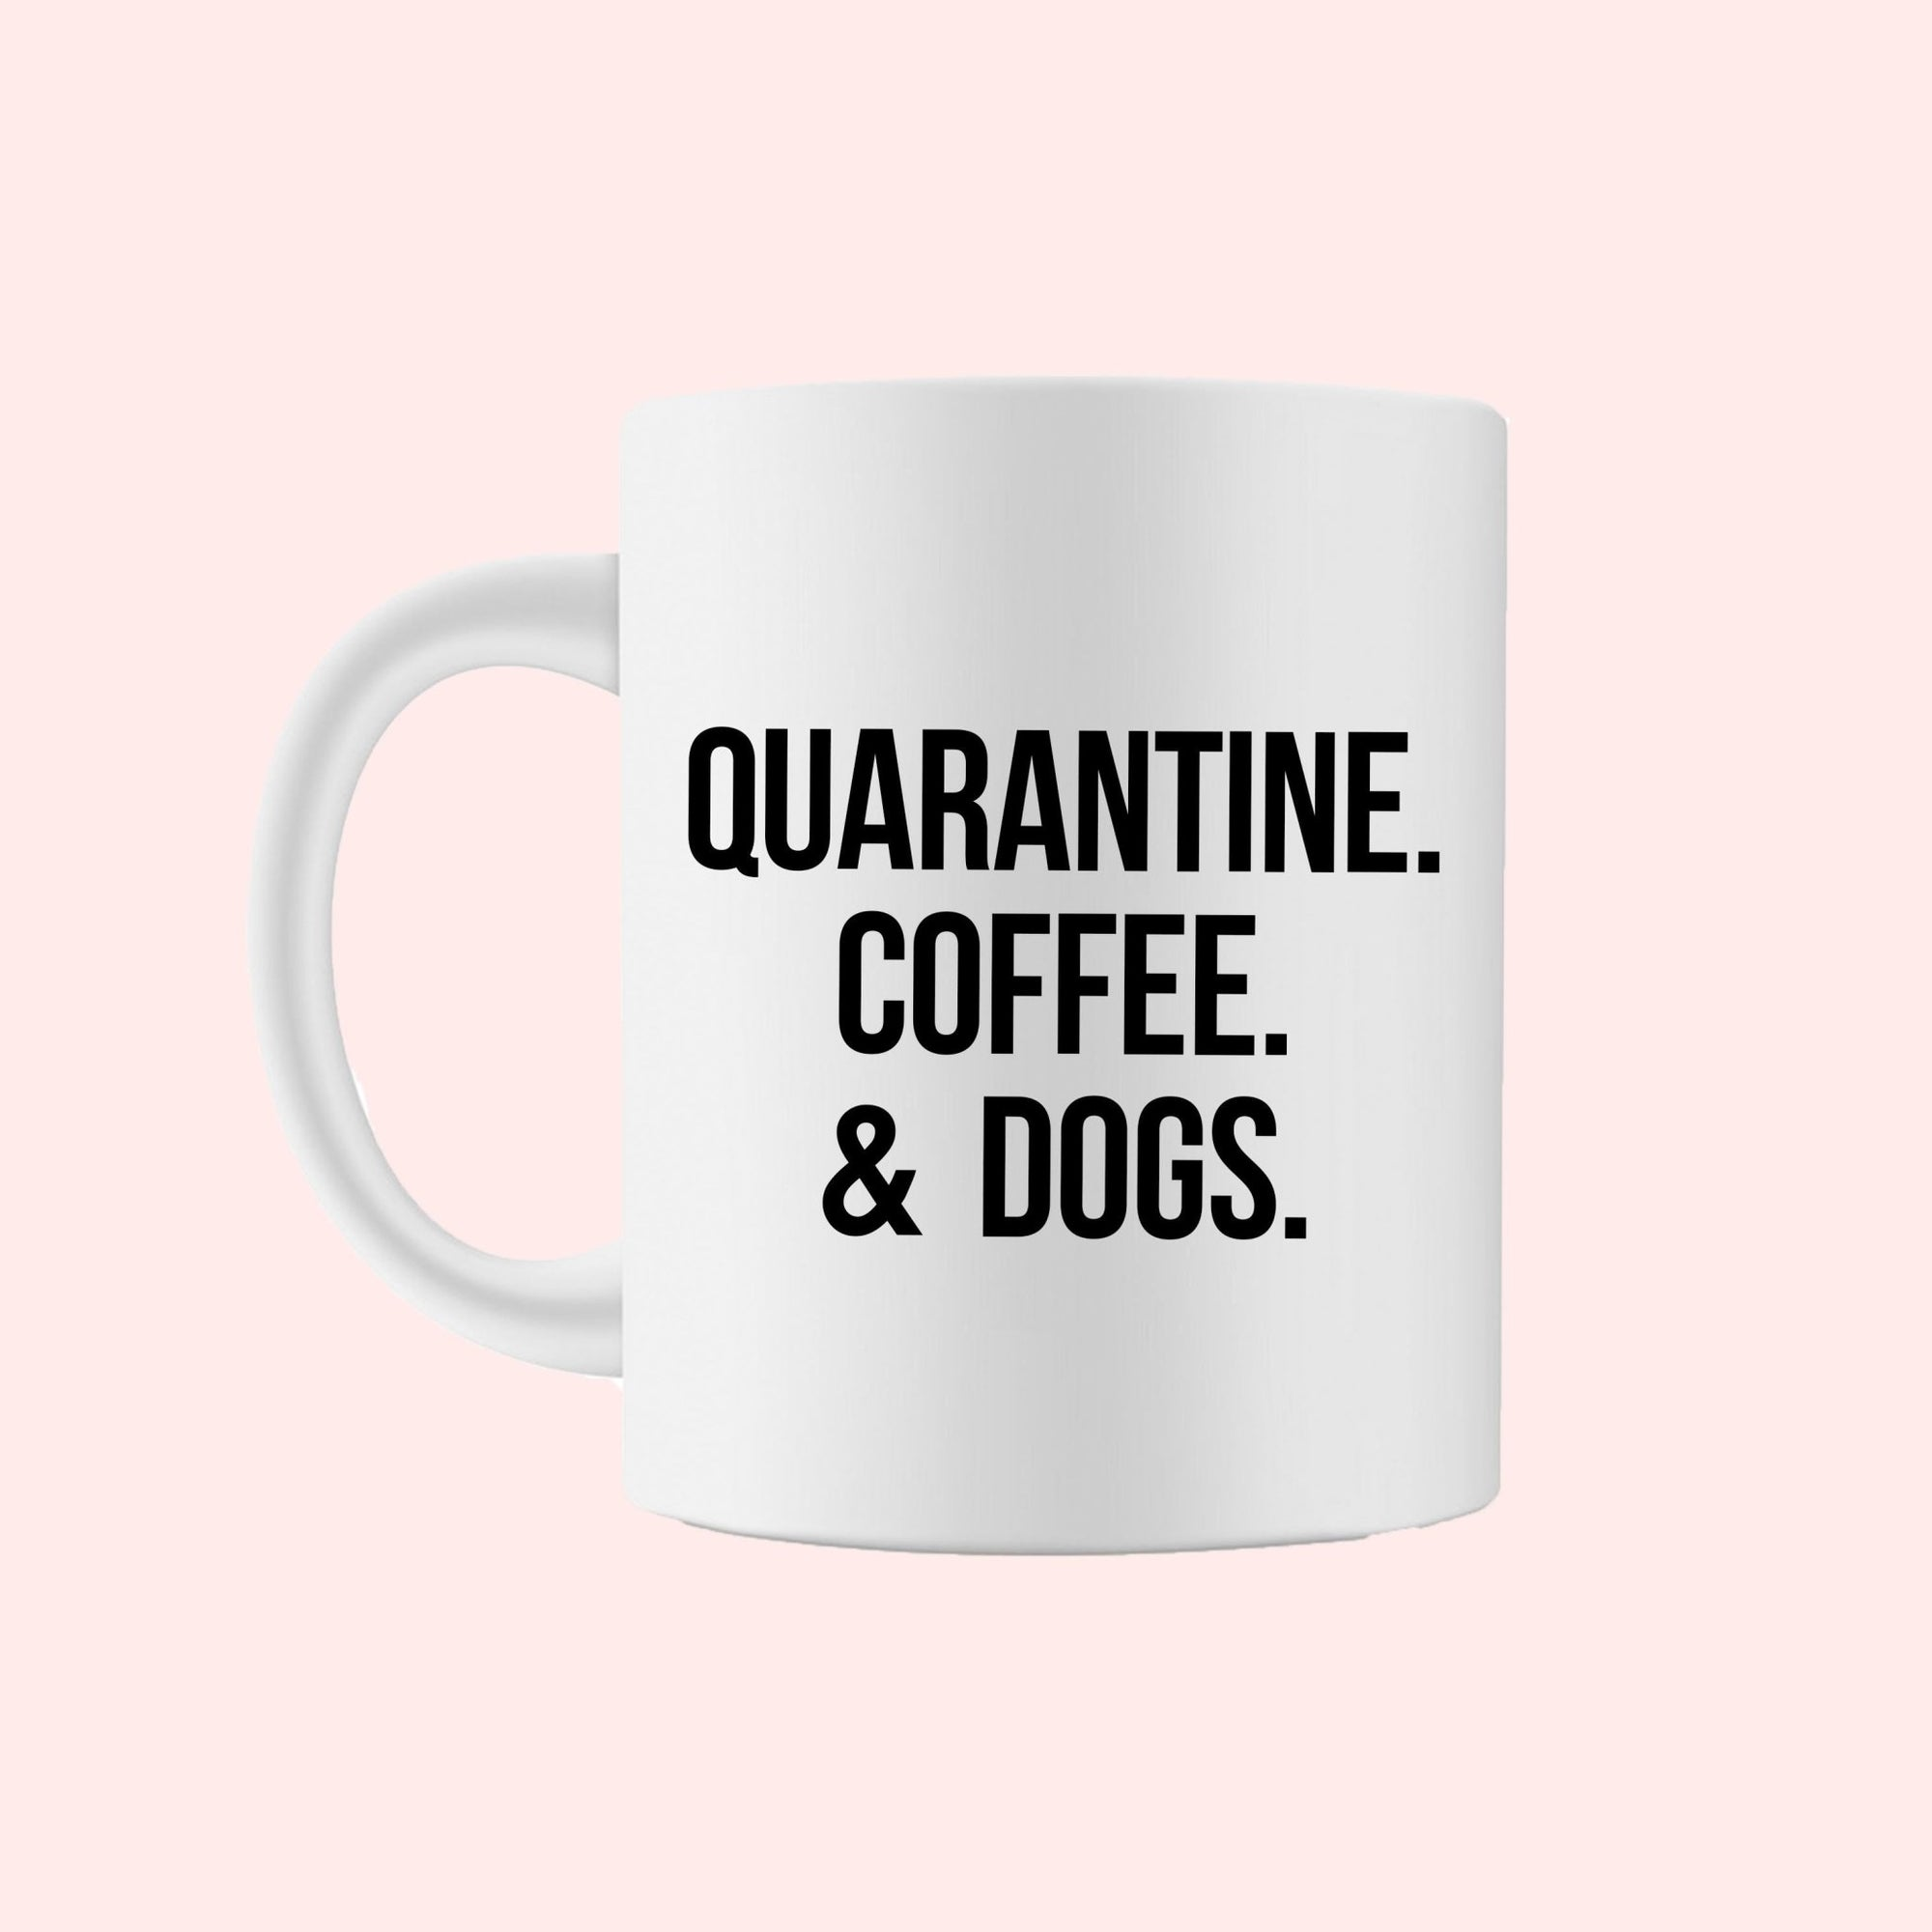 Quarantine Coffee & Dogs Coffee Mug - Sprinkled With Pink #bachelorette #custom #gifts